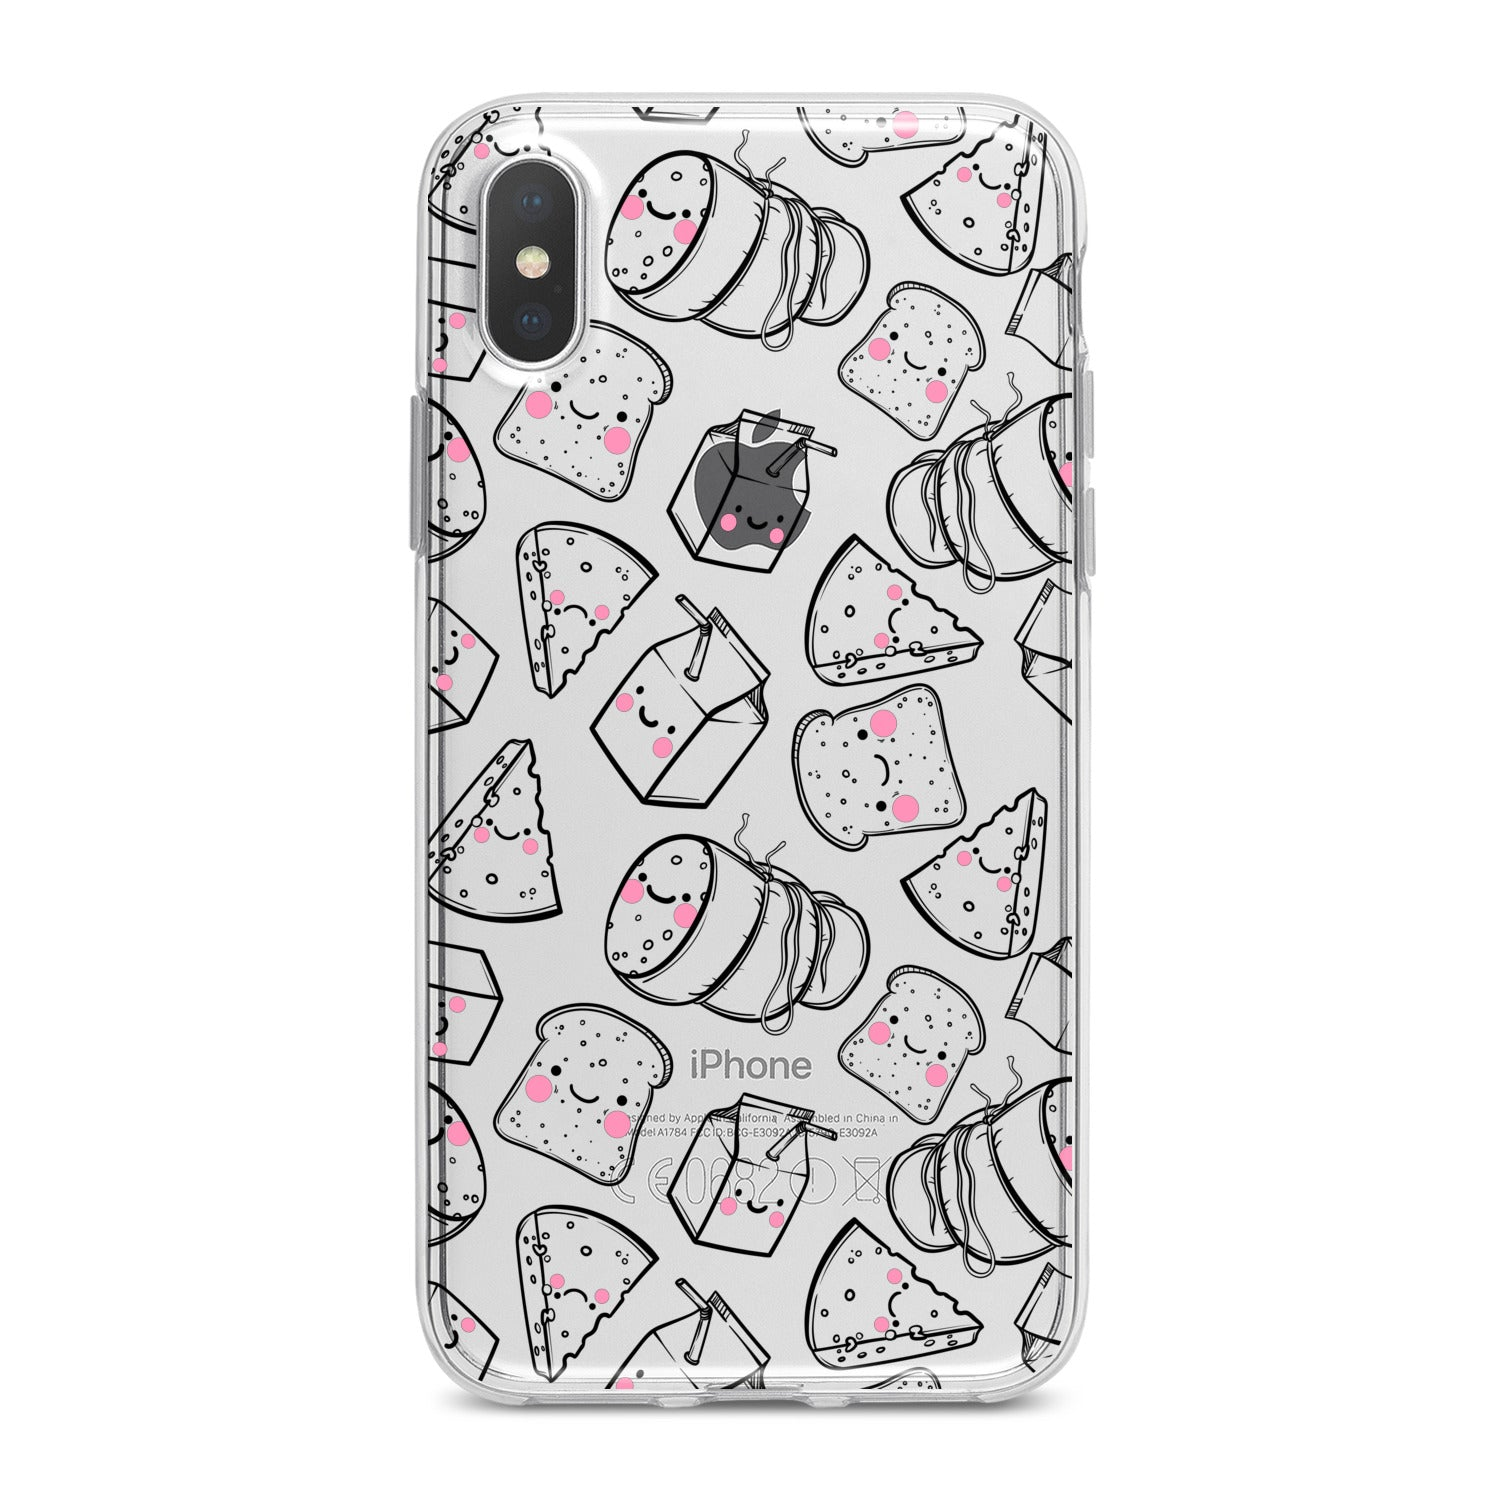 Lex Altern Food Graphic Phone Case for your iPhone & Android phone.